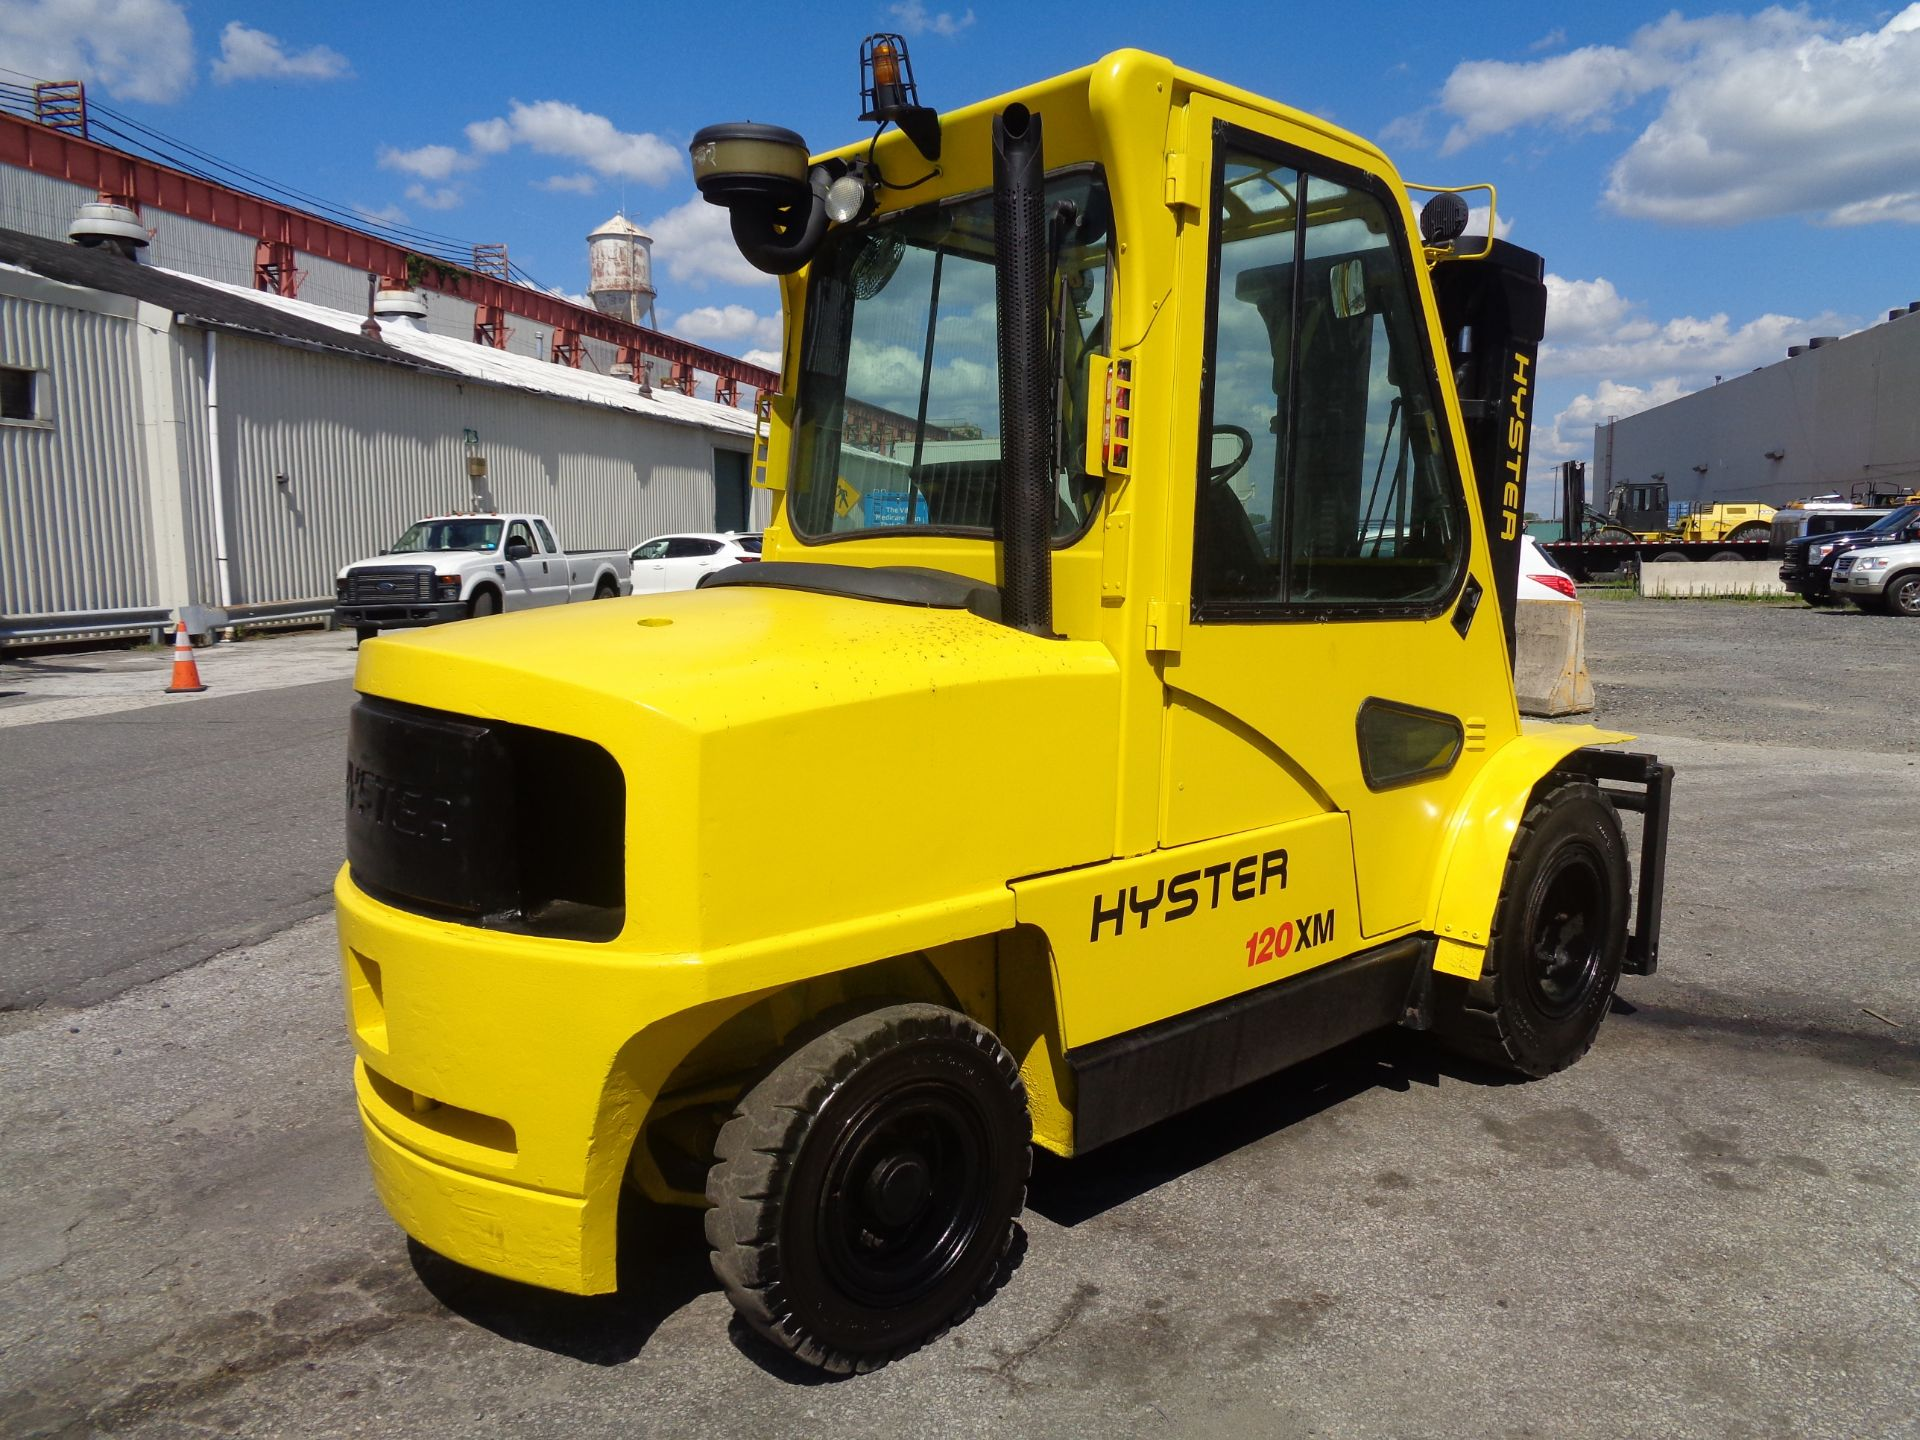 Hyster H120XL 12,000lb Forklift - Image 2 of 15